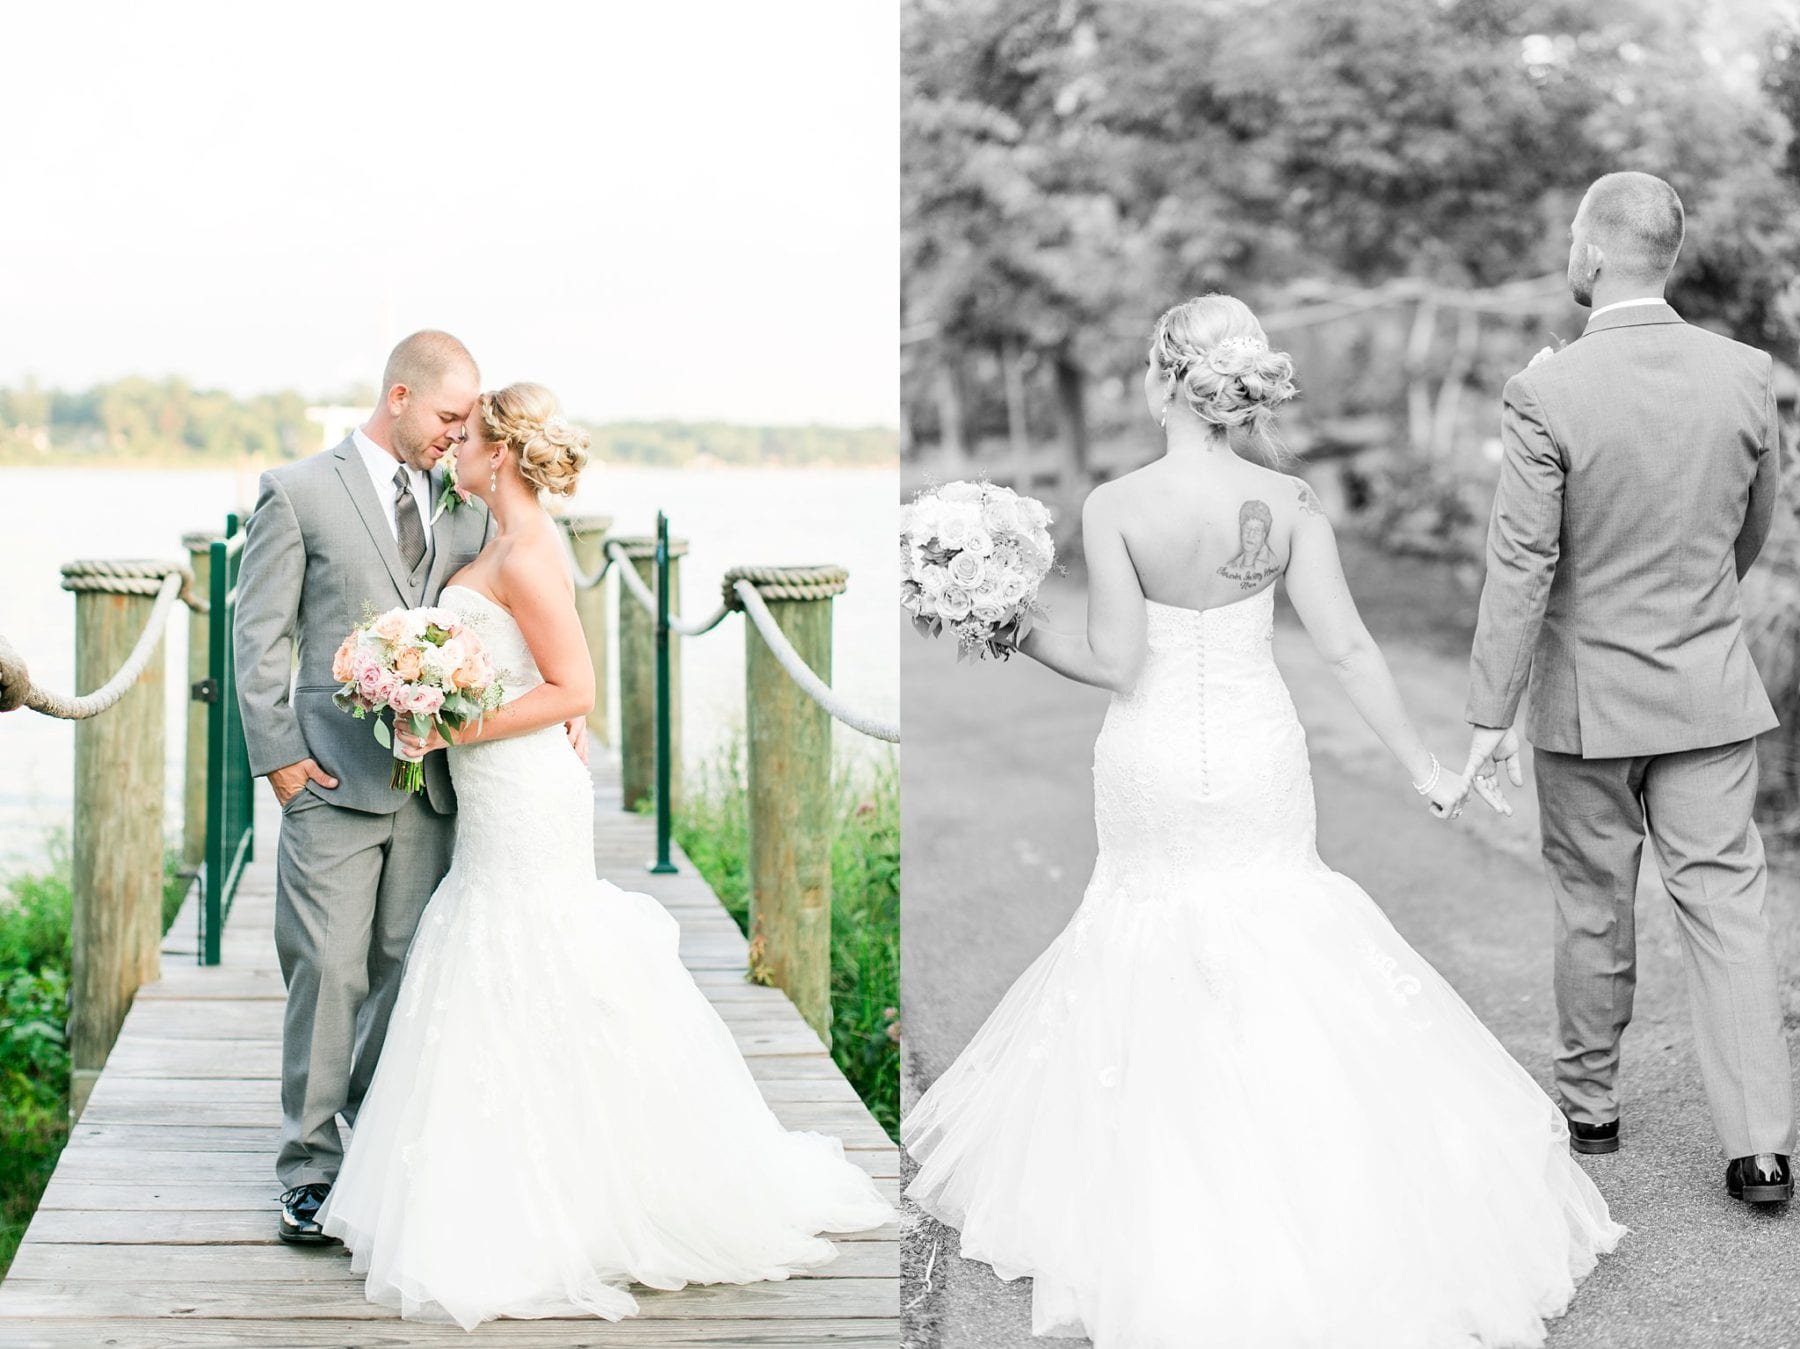 Waters Edge Wedding Photos Maryland Wedding Photographer Megan Kelsey Photography Katie & Conor-524.JPG